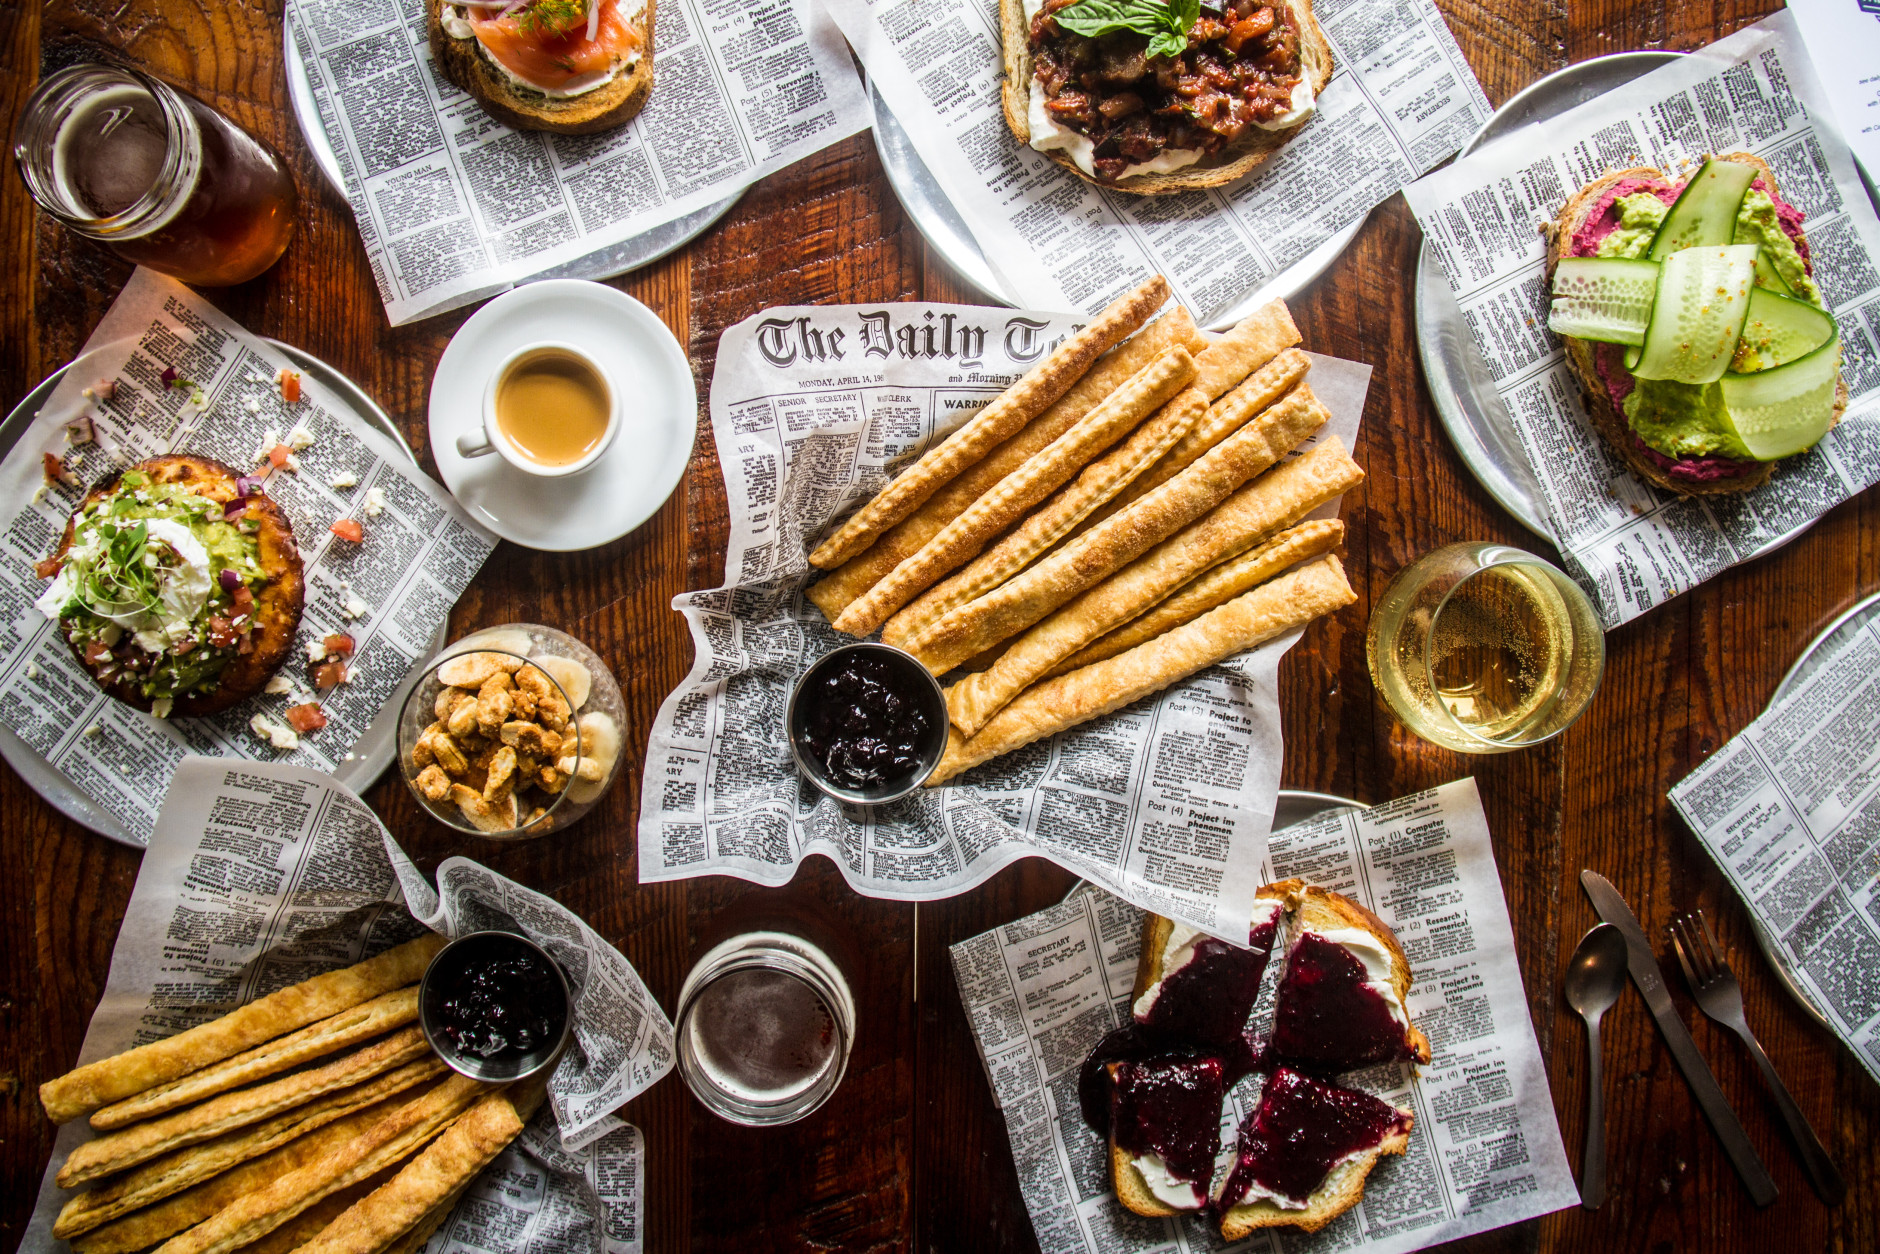 Politics & Prose in D.C. has revamped the menu at its renovated coffee shop, The Den, which now sells pie fries, shown here with a blueberry dipping sauce. (Photo by Farrah Skeiky)